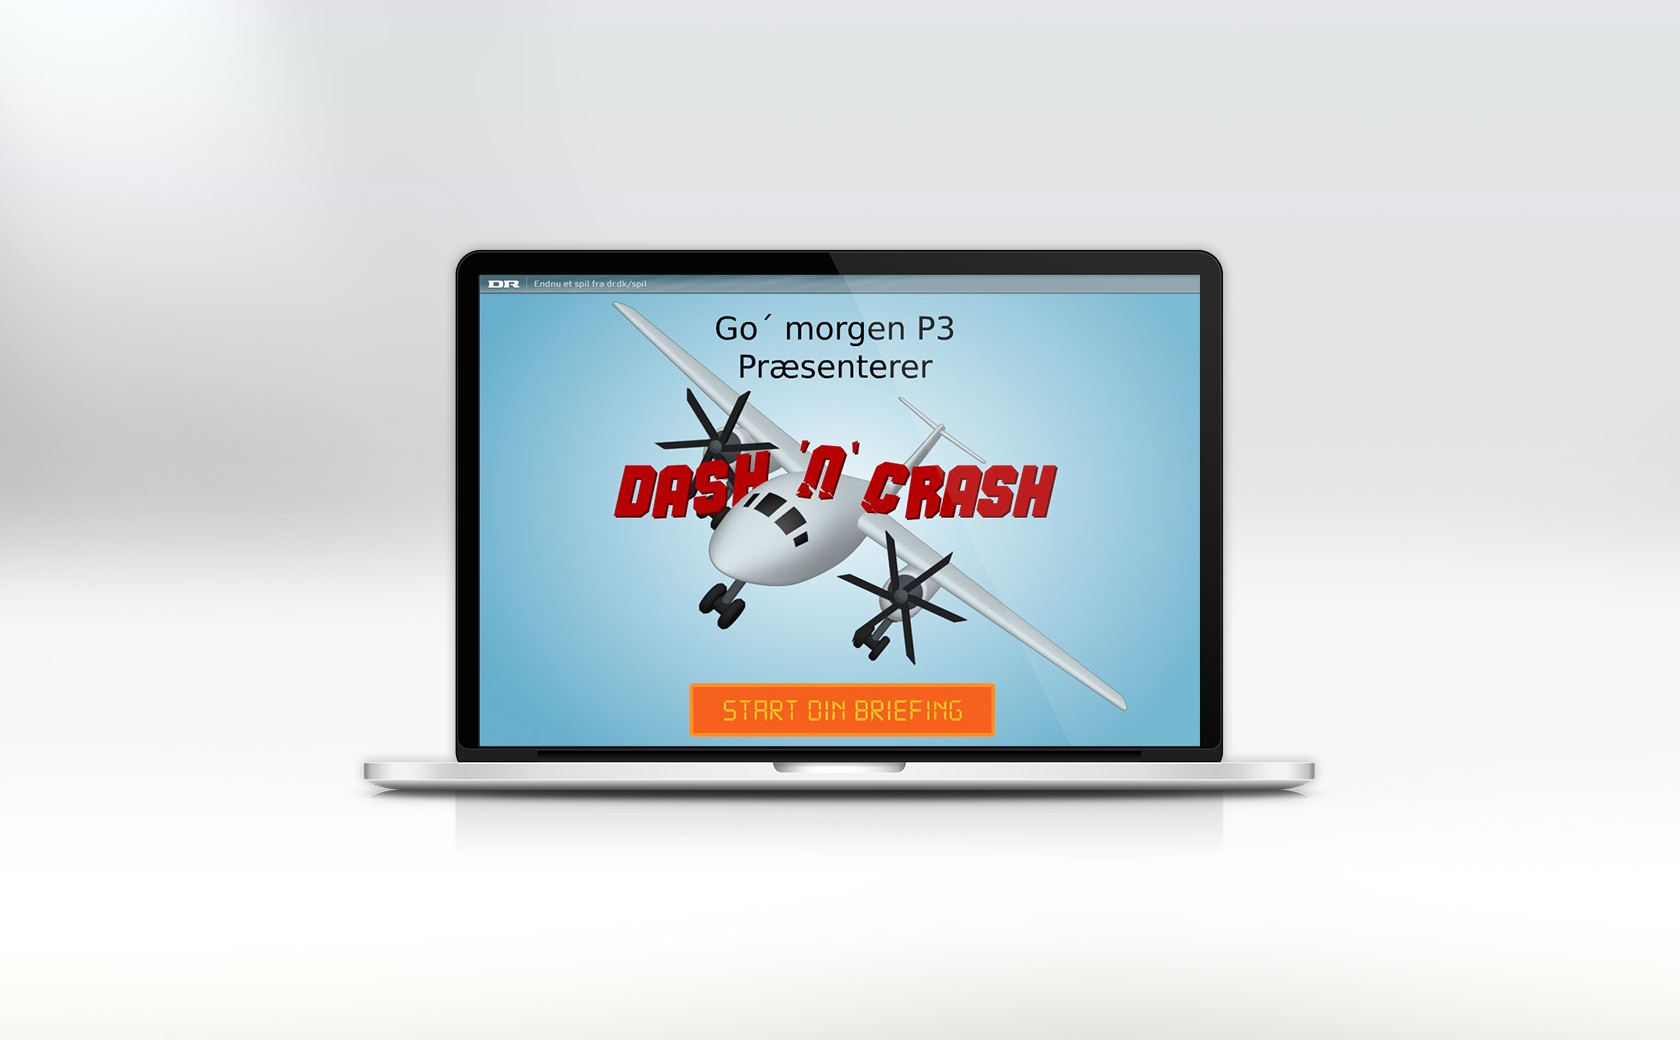 Dash'n'crash